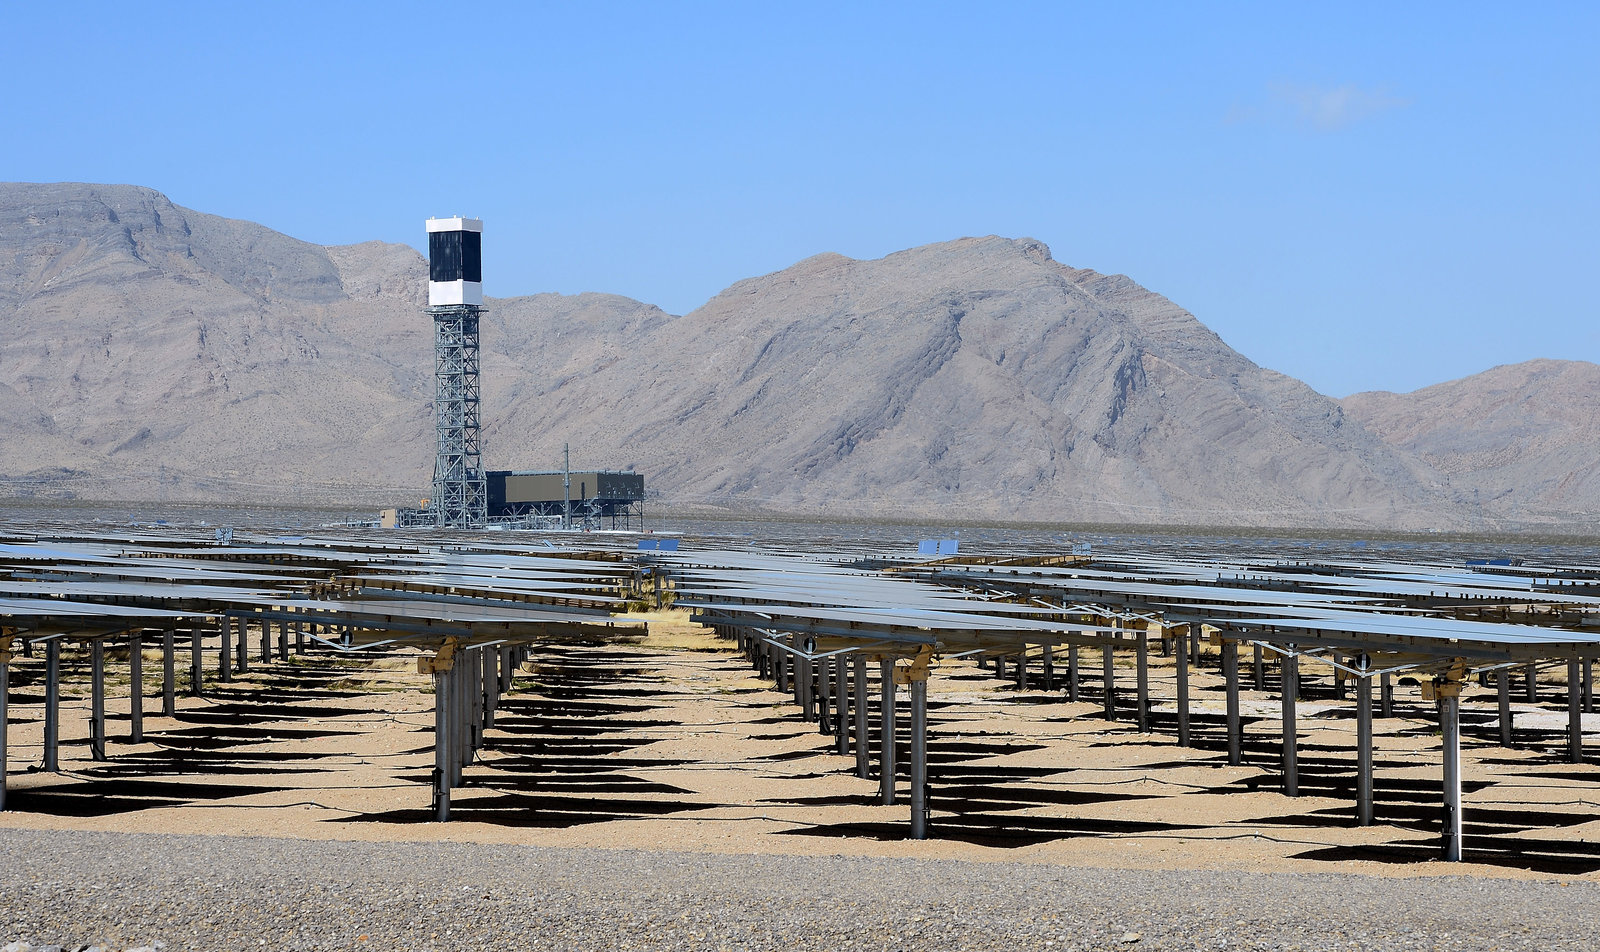 Massive California solar facility powers thousands of homes